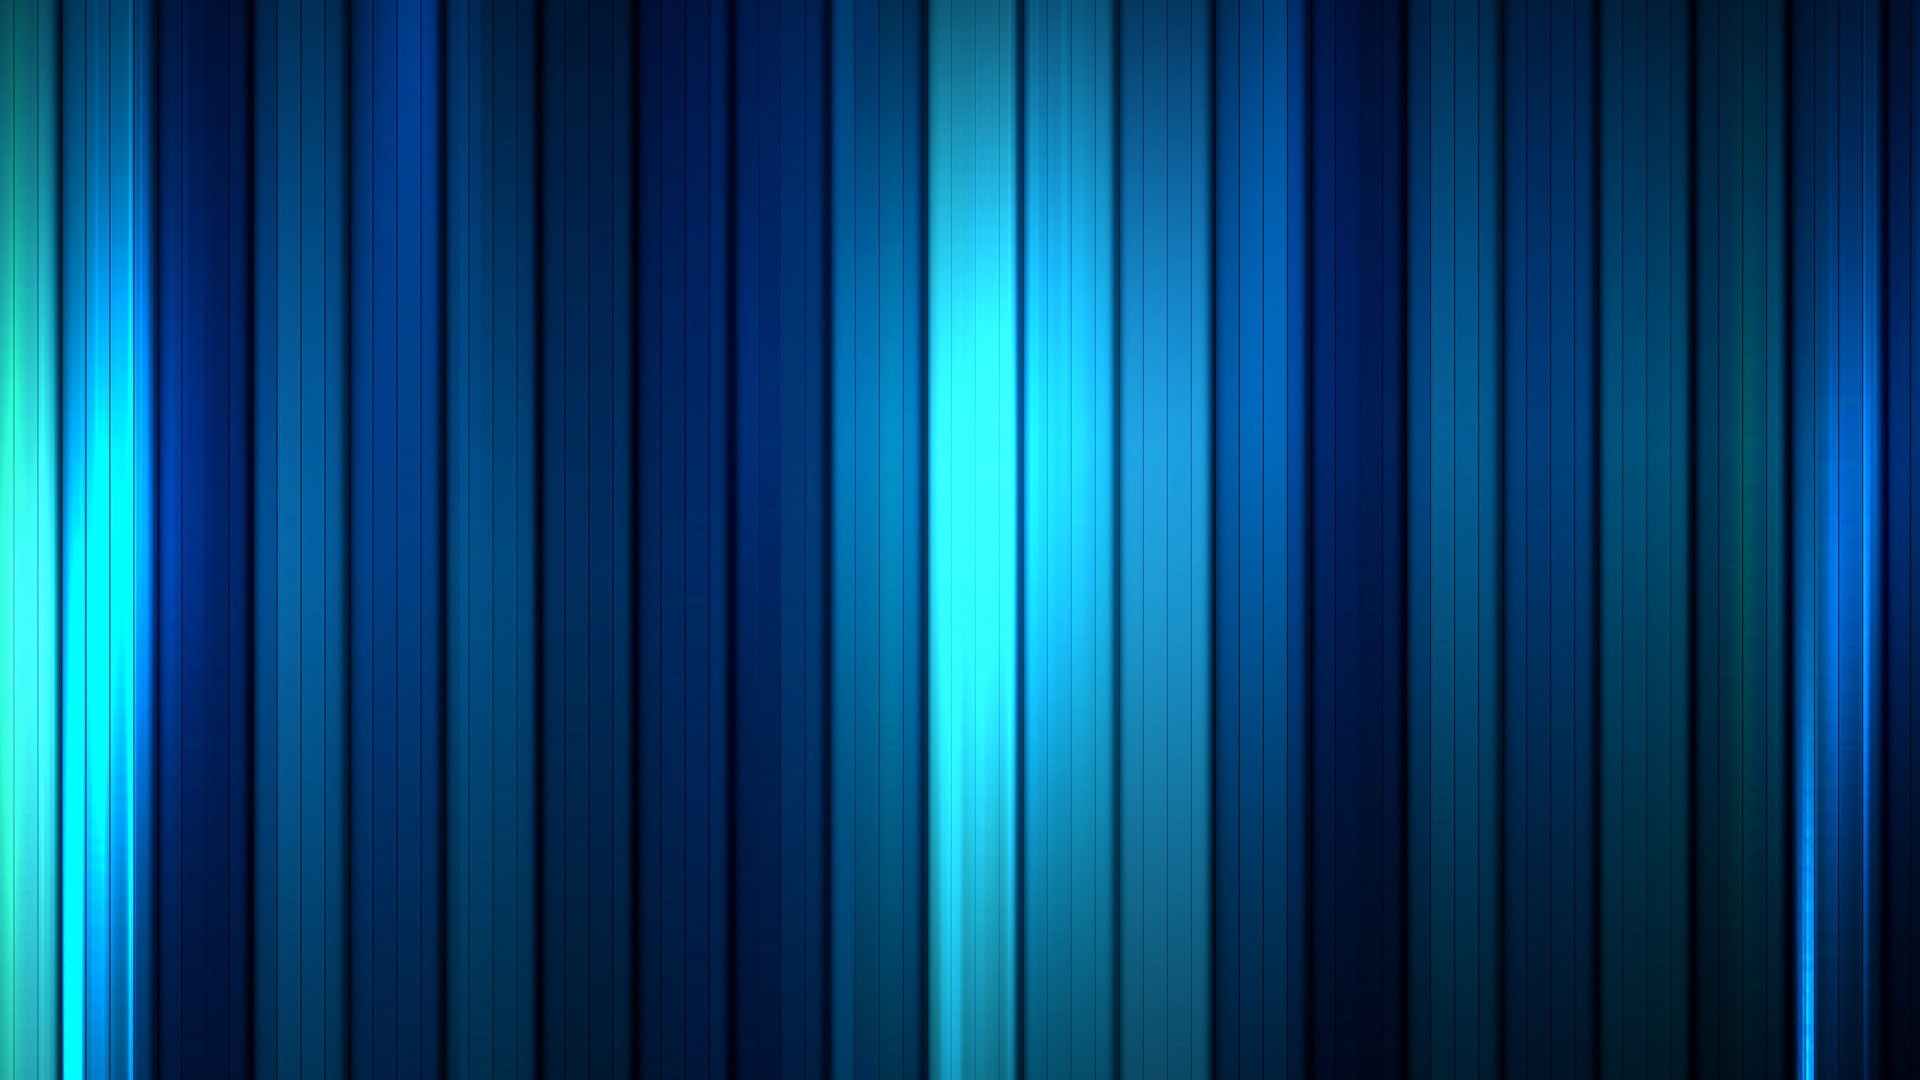 Navy blue perpendicular gloominess desktop wall HD Wallpapers Rocks 1920x1080